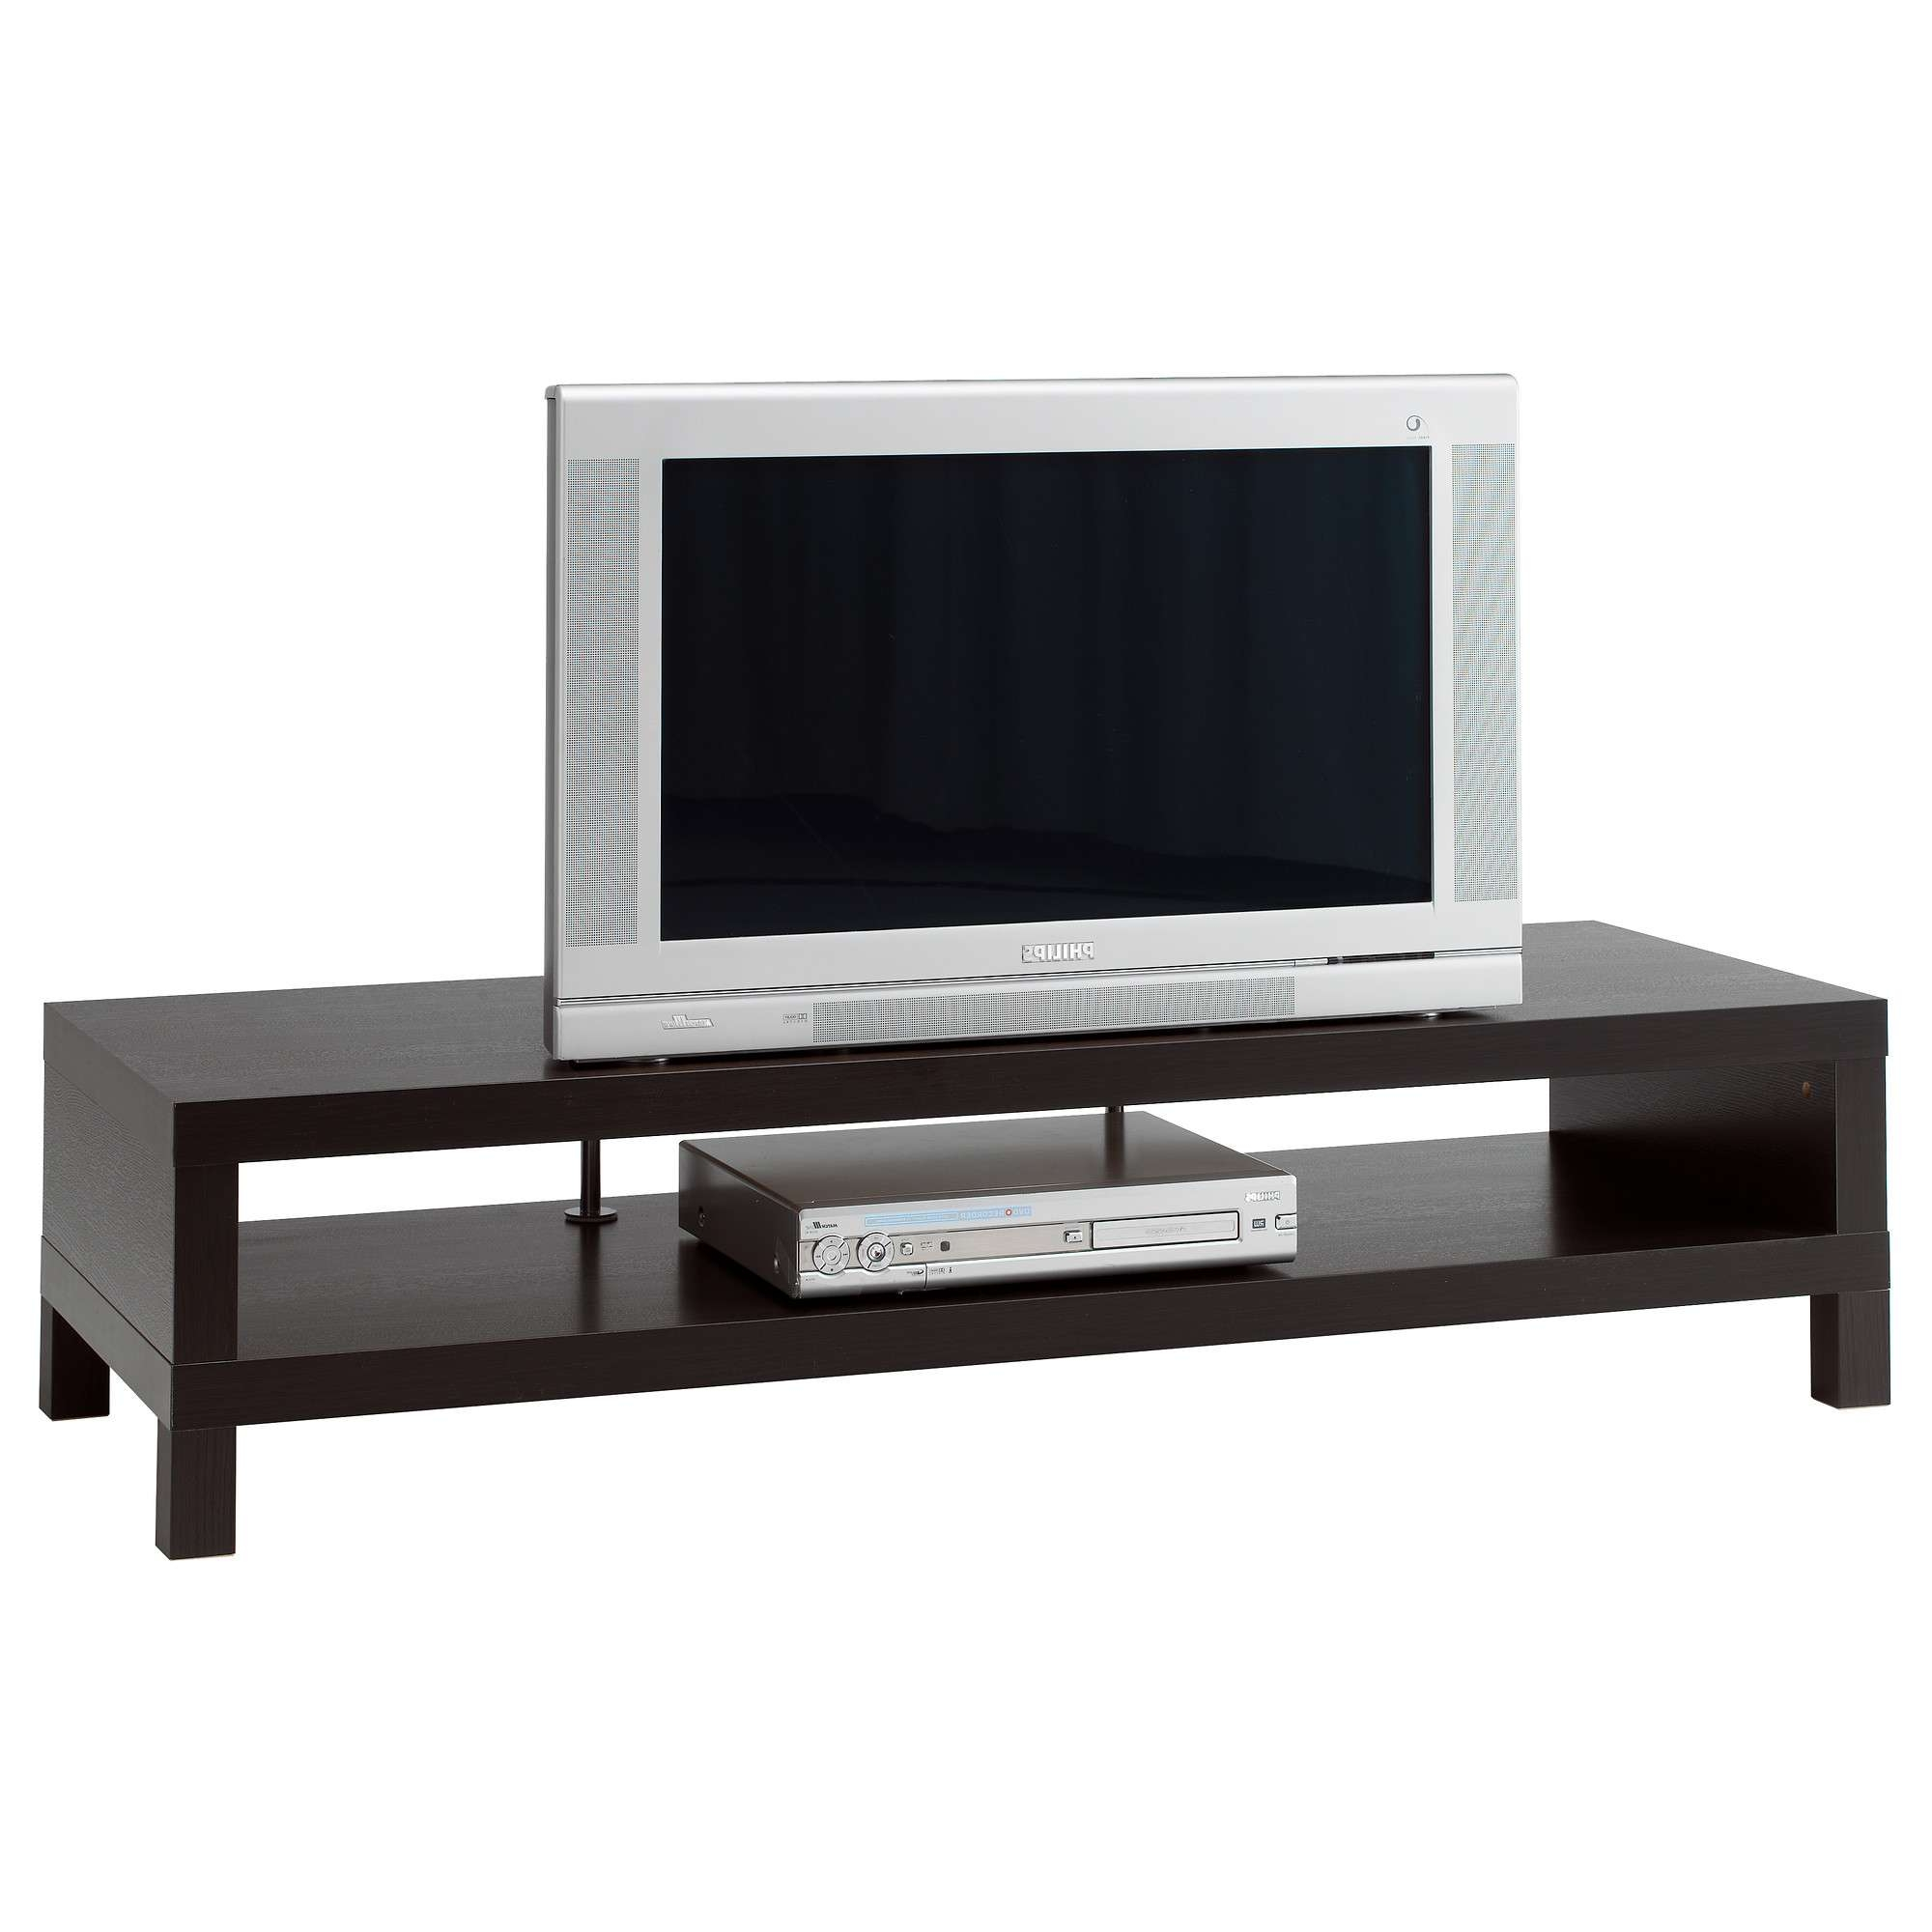 Lack Tv Unit – Ikea With Regard To Tv Stands 38 Inches Wide (View 6 of 15)